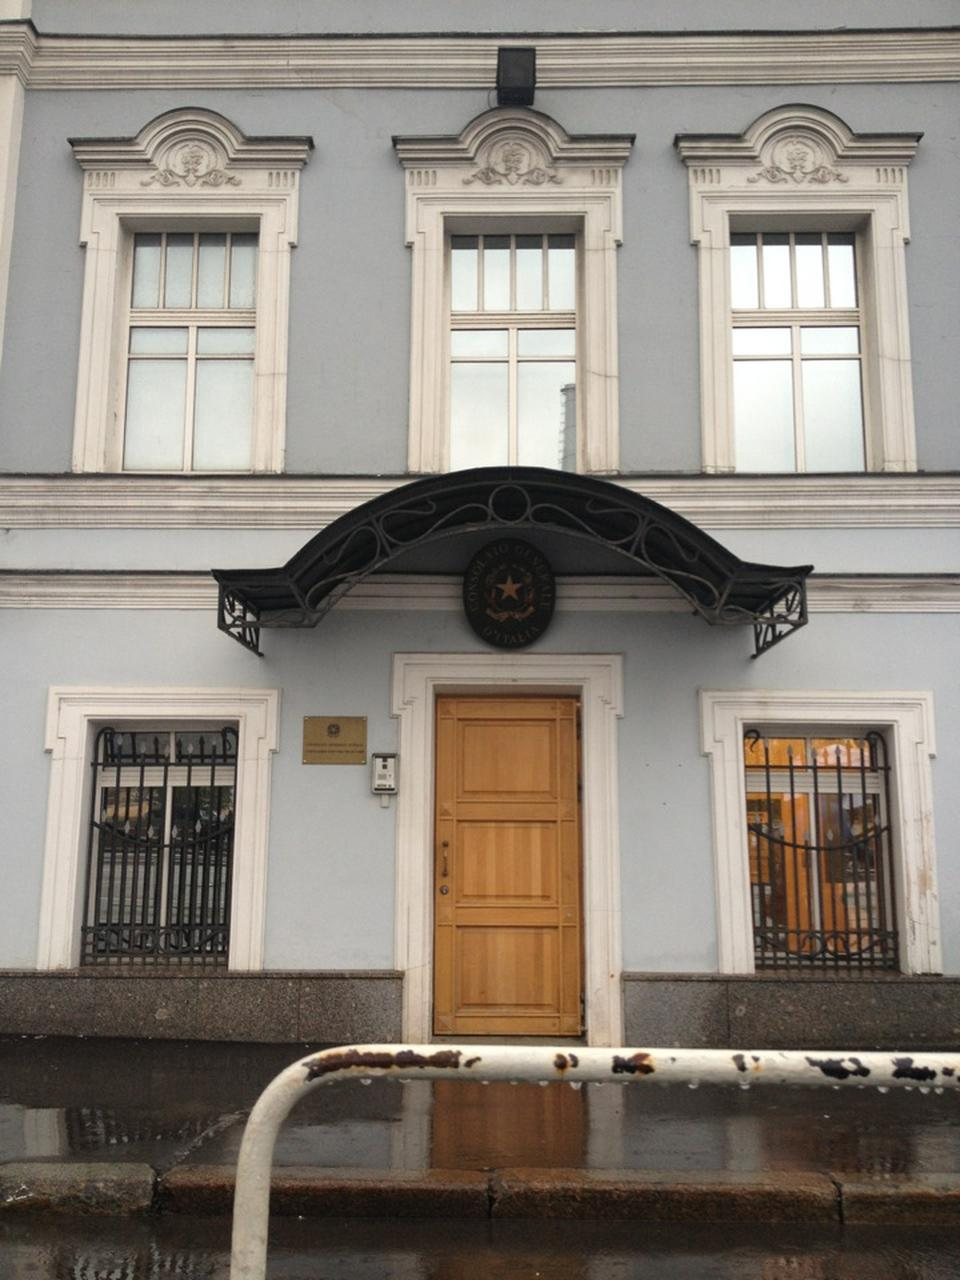 Site of the Consulate General of Montepulciano in Moscow